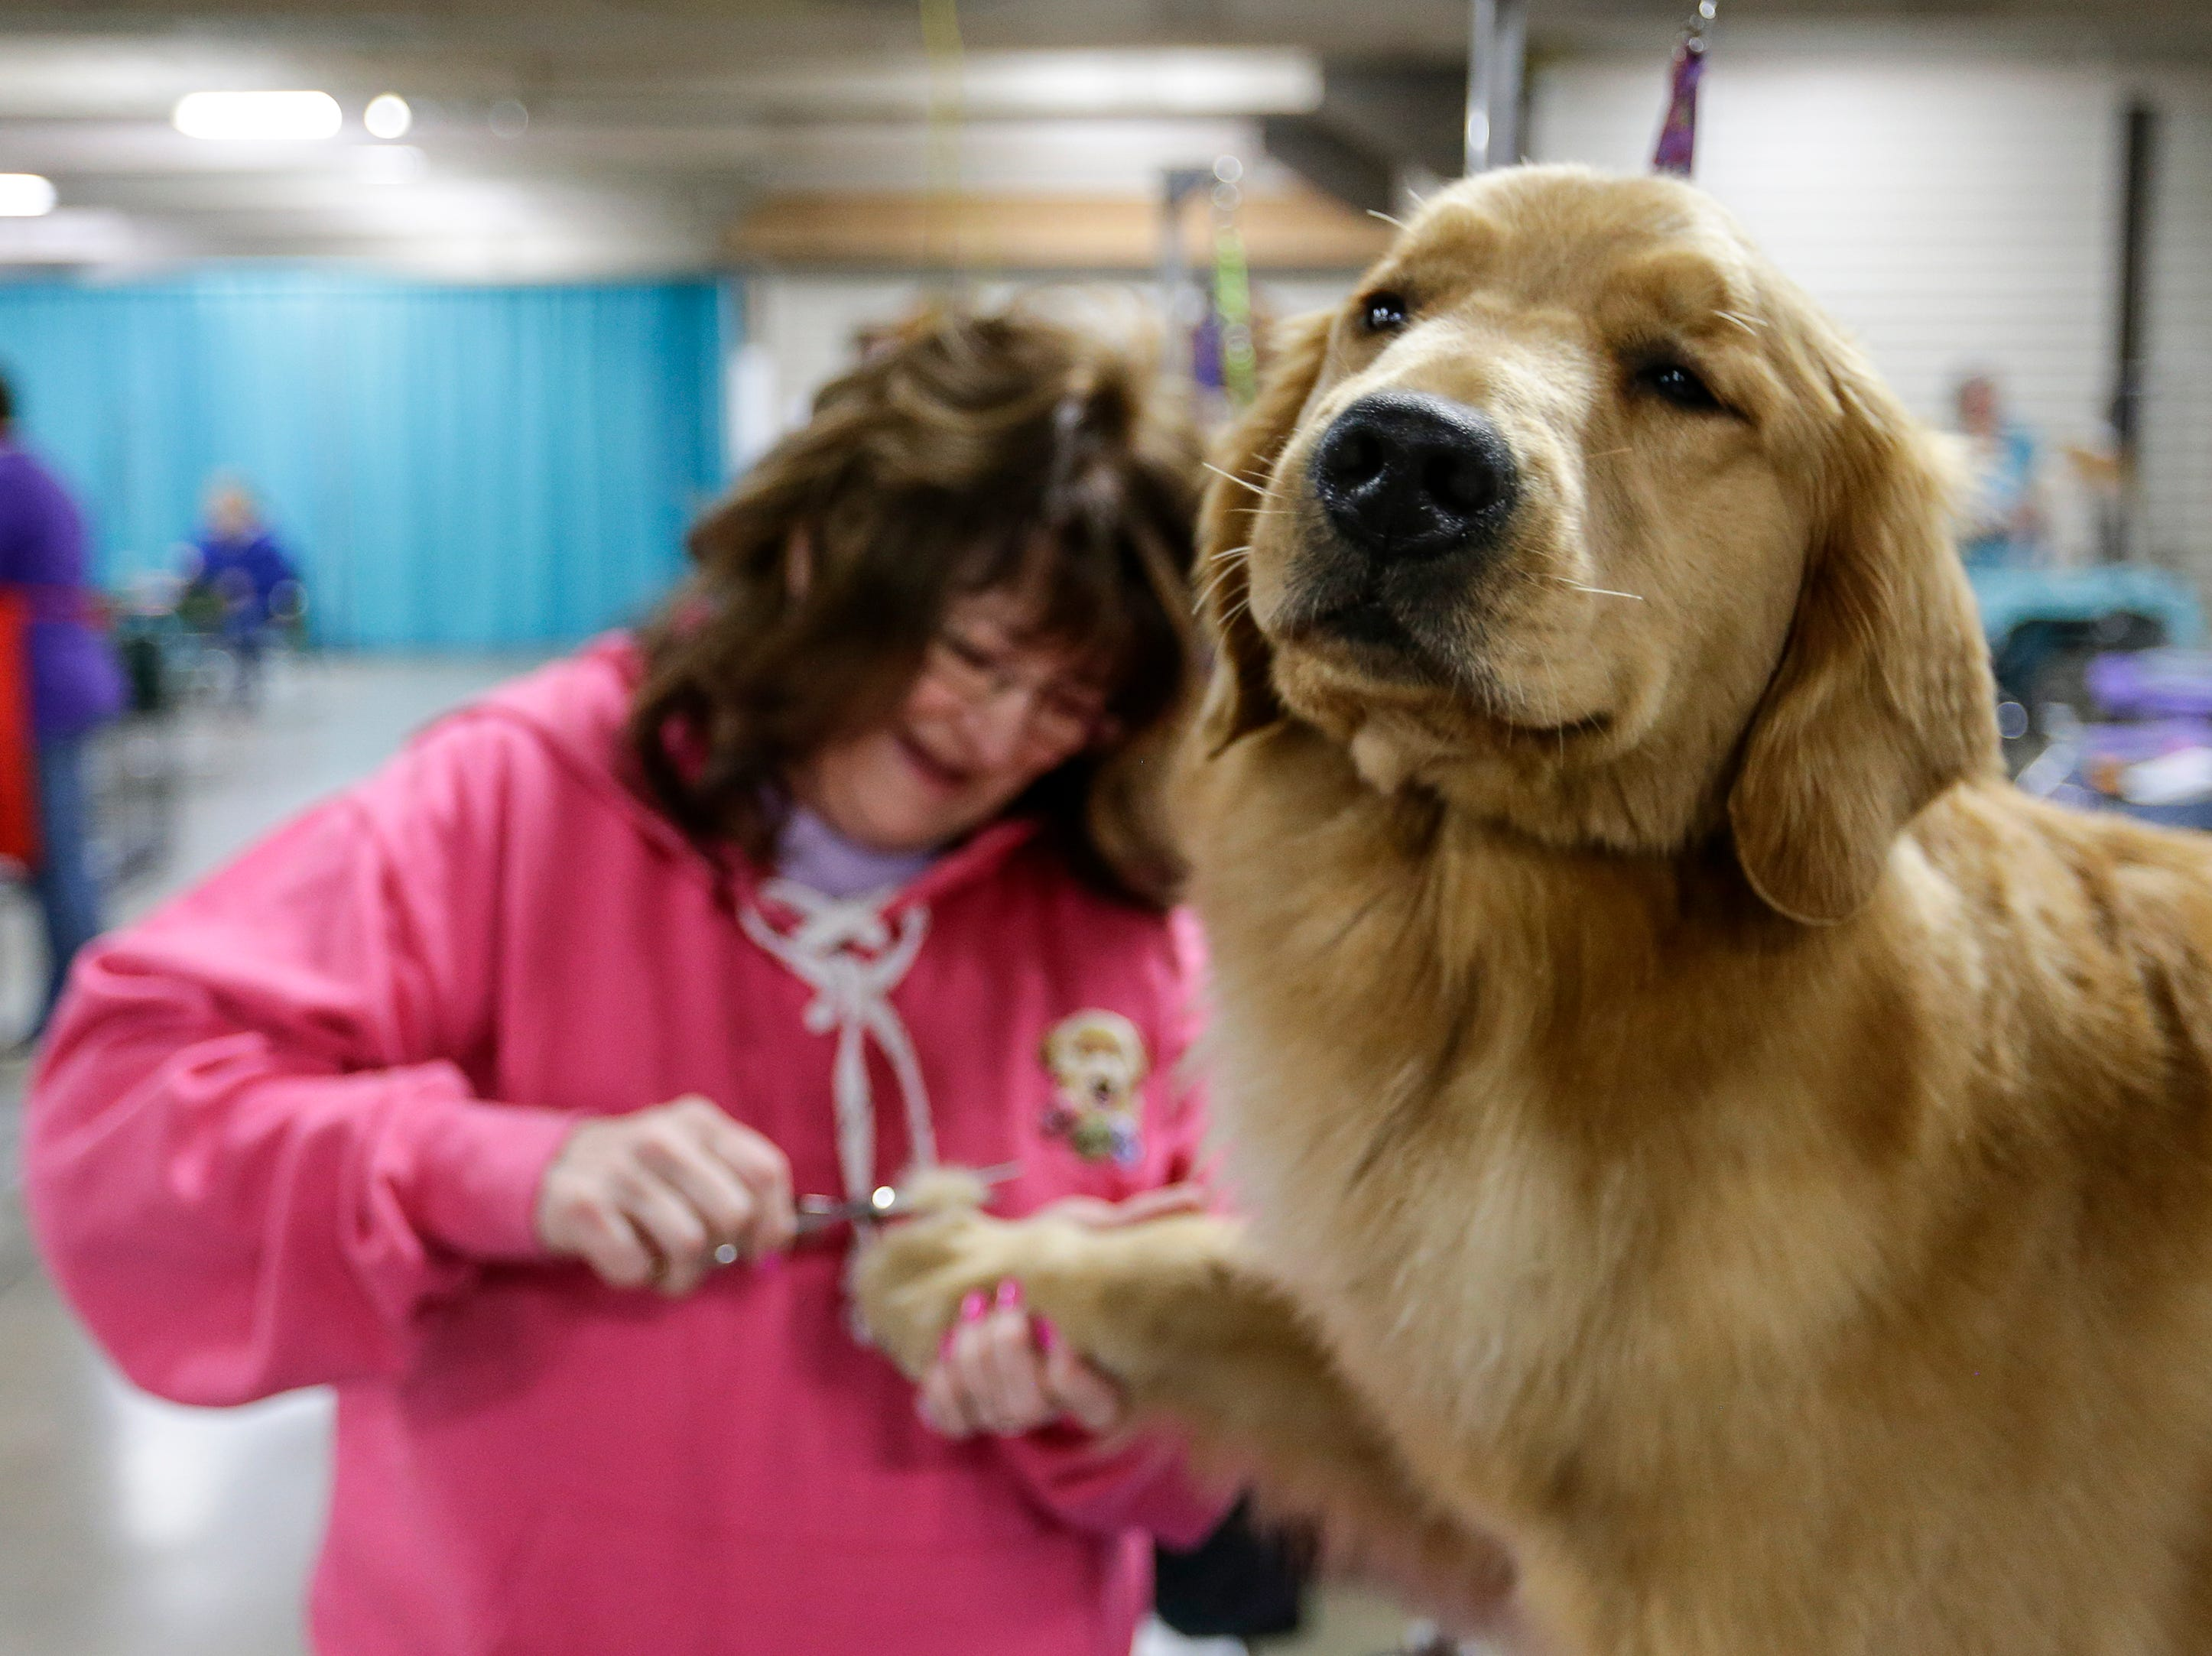 Kathy Siegle, of Kettle River, Minn., trims the fur on her golden retriever Olivia during the Northeast Wisconsin Dog Show Classic at the Manitowoc County Expo Center Thursday, March 28, 2019, in Manitowoc, Wis. The show, put on by the Manitowoc County and Packerland Kennel Clubs, runs through Sunday and is expected to draw nearly 4,000 dogs this weekend. Joshua Clark/USA TODAY NETWORK-Wisconsin